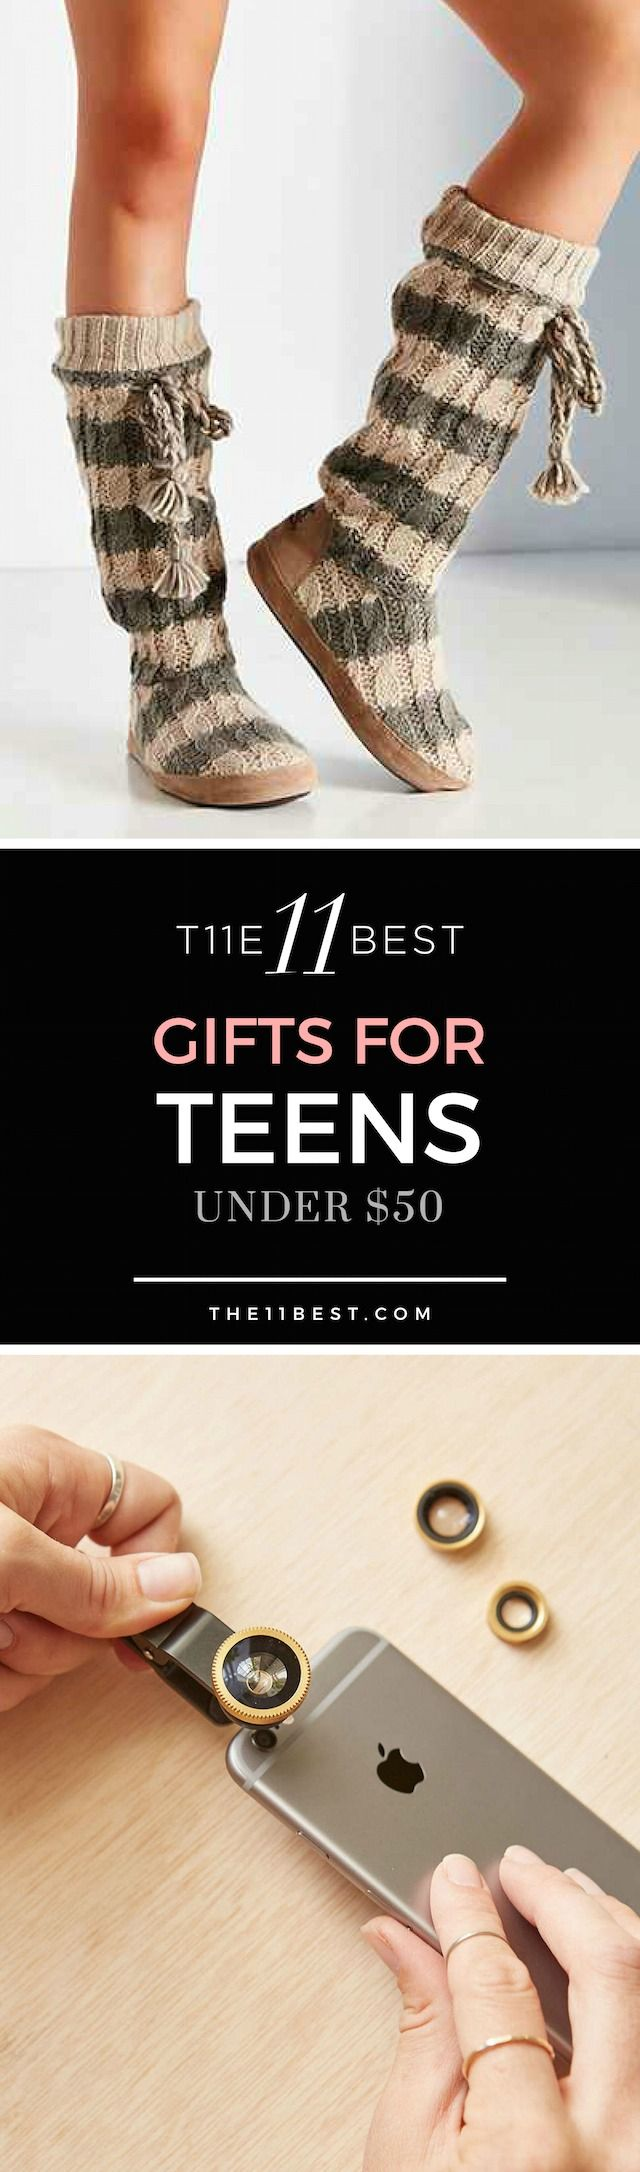 The 11 Best Gifts For Teens Under 50